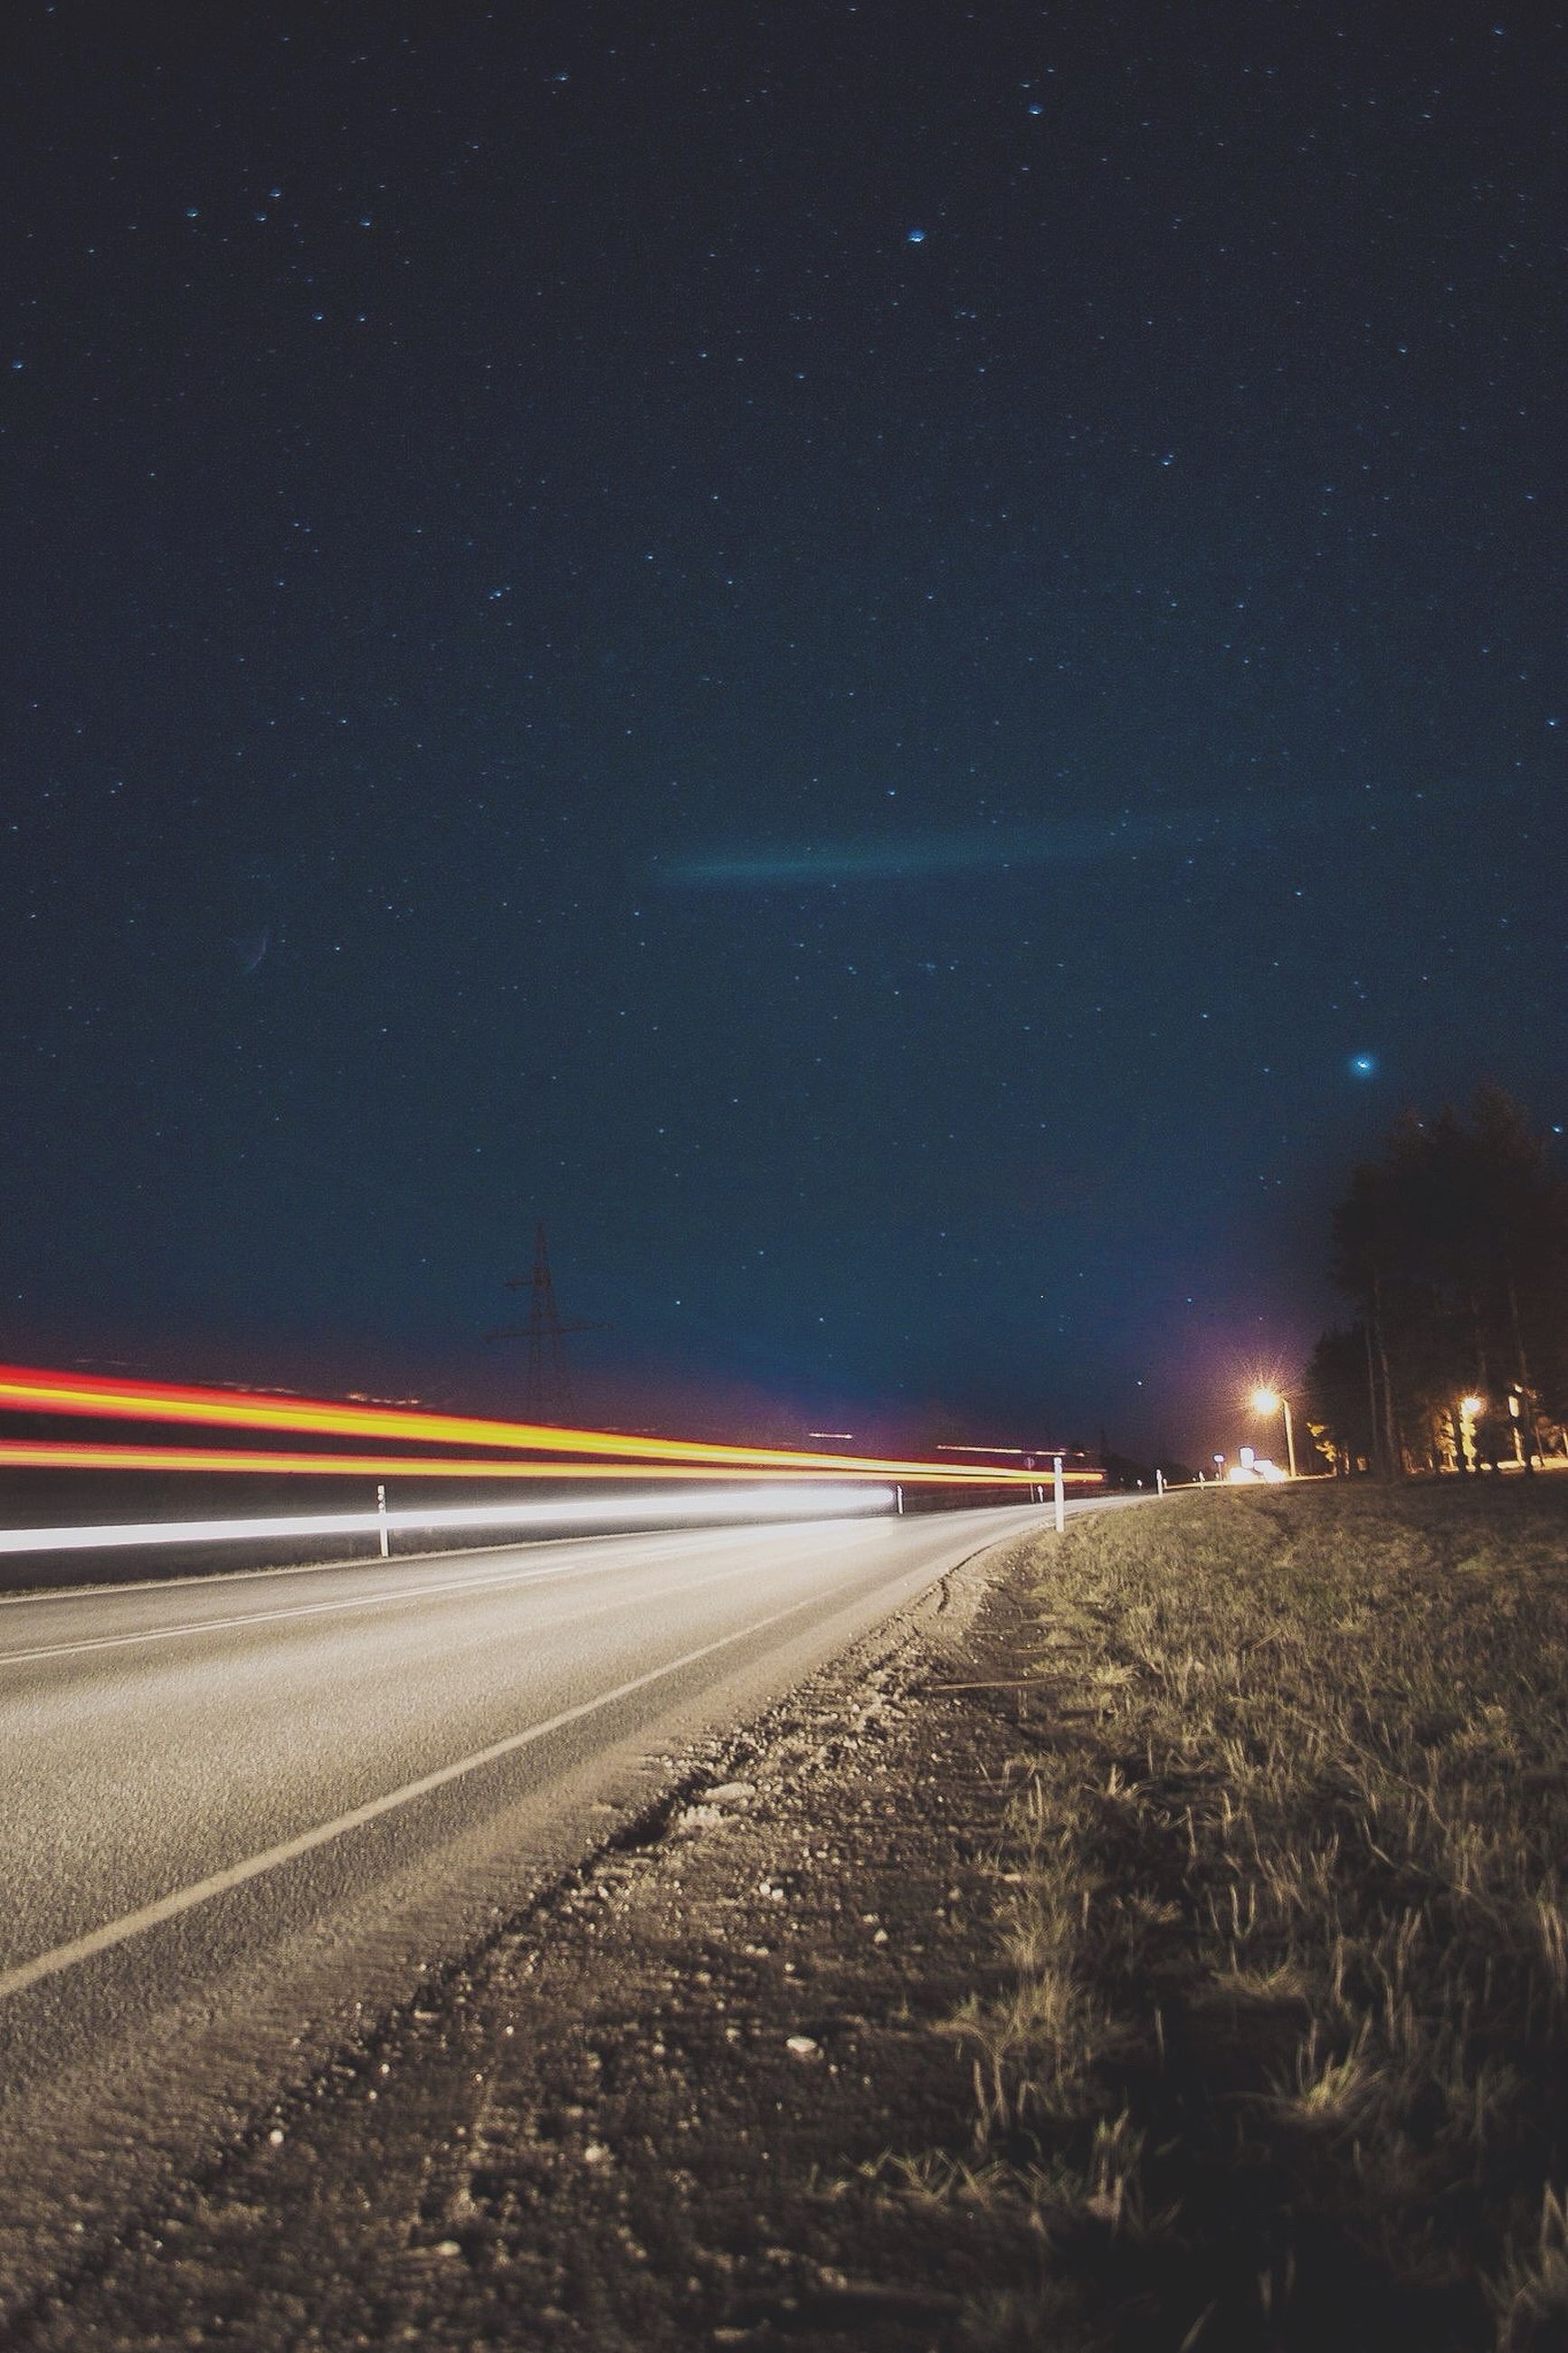 night, illuminated, road, star - space, transportation, sky, scenics, tranquil scene, landscape, long exposure, astronomy, tranquility, star field, nature, infinity, beauty in nature, light trail, galaxy, speed, the way forward